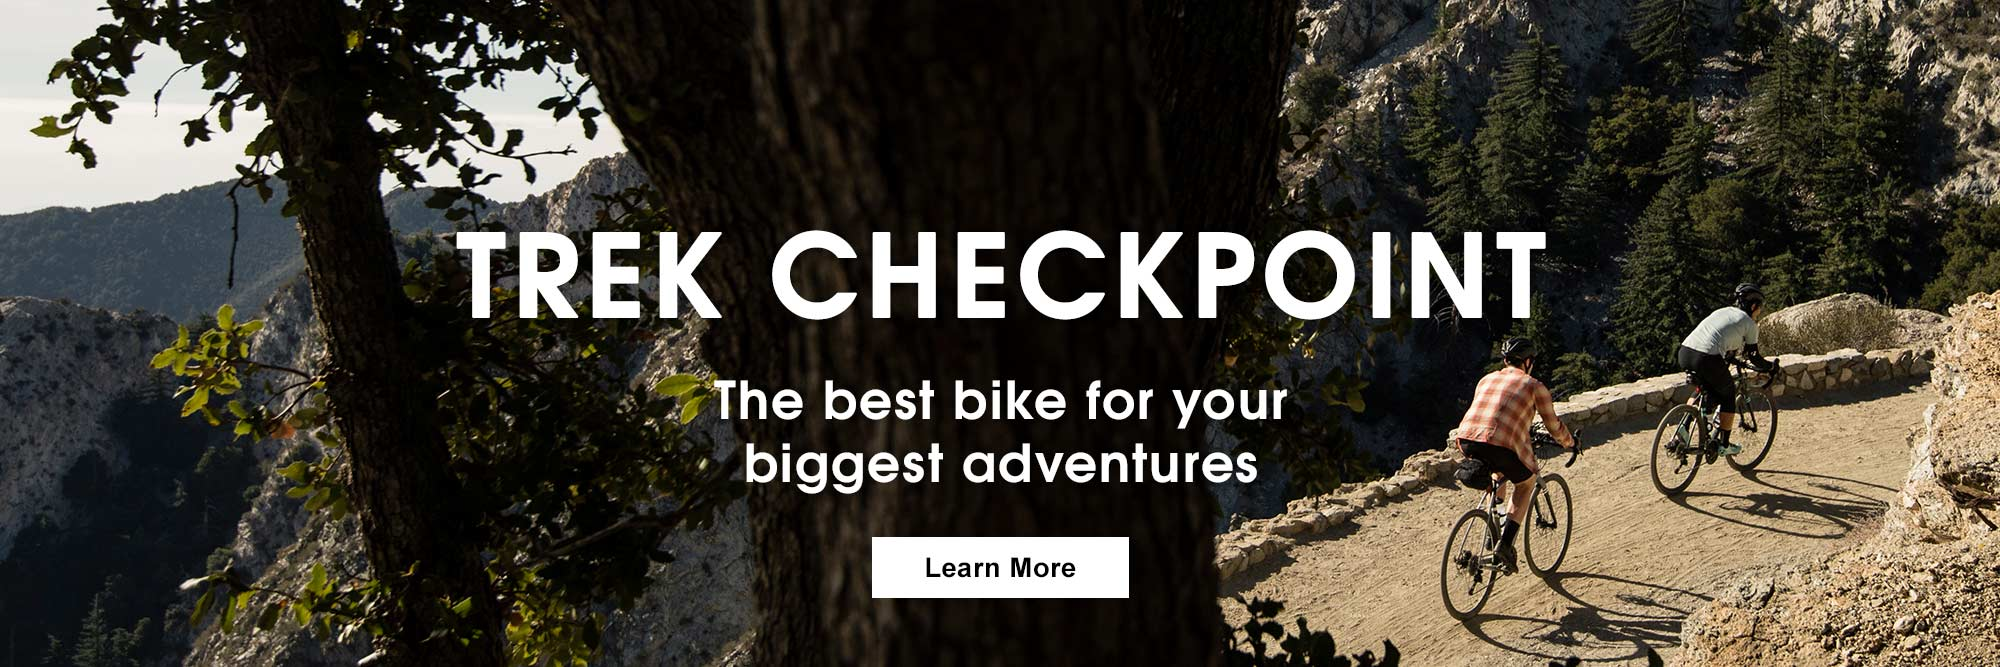 TREK CHECKPOINT NOW AVAILABLE AT J&R CYCLE